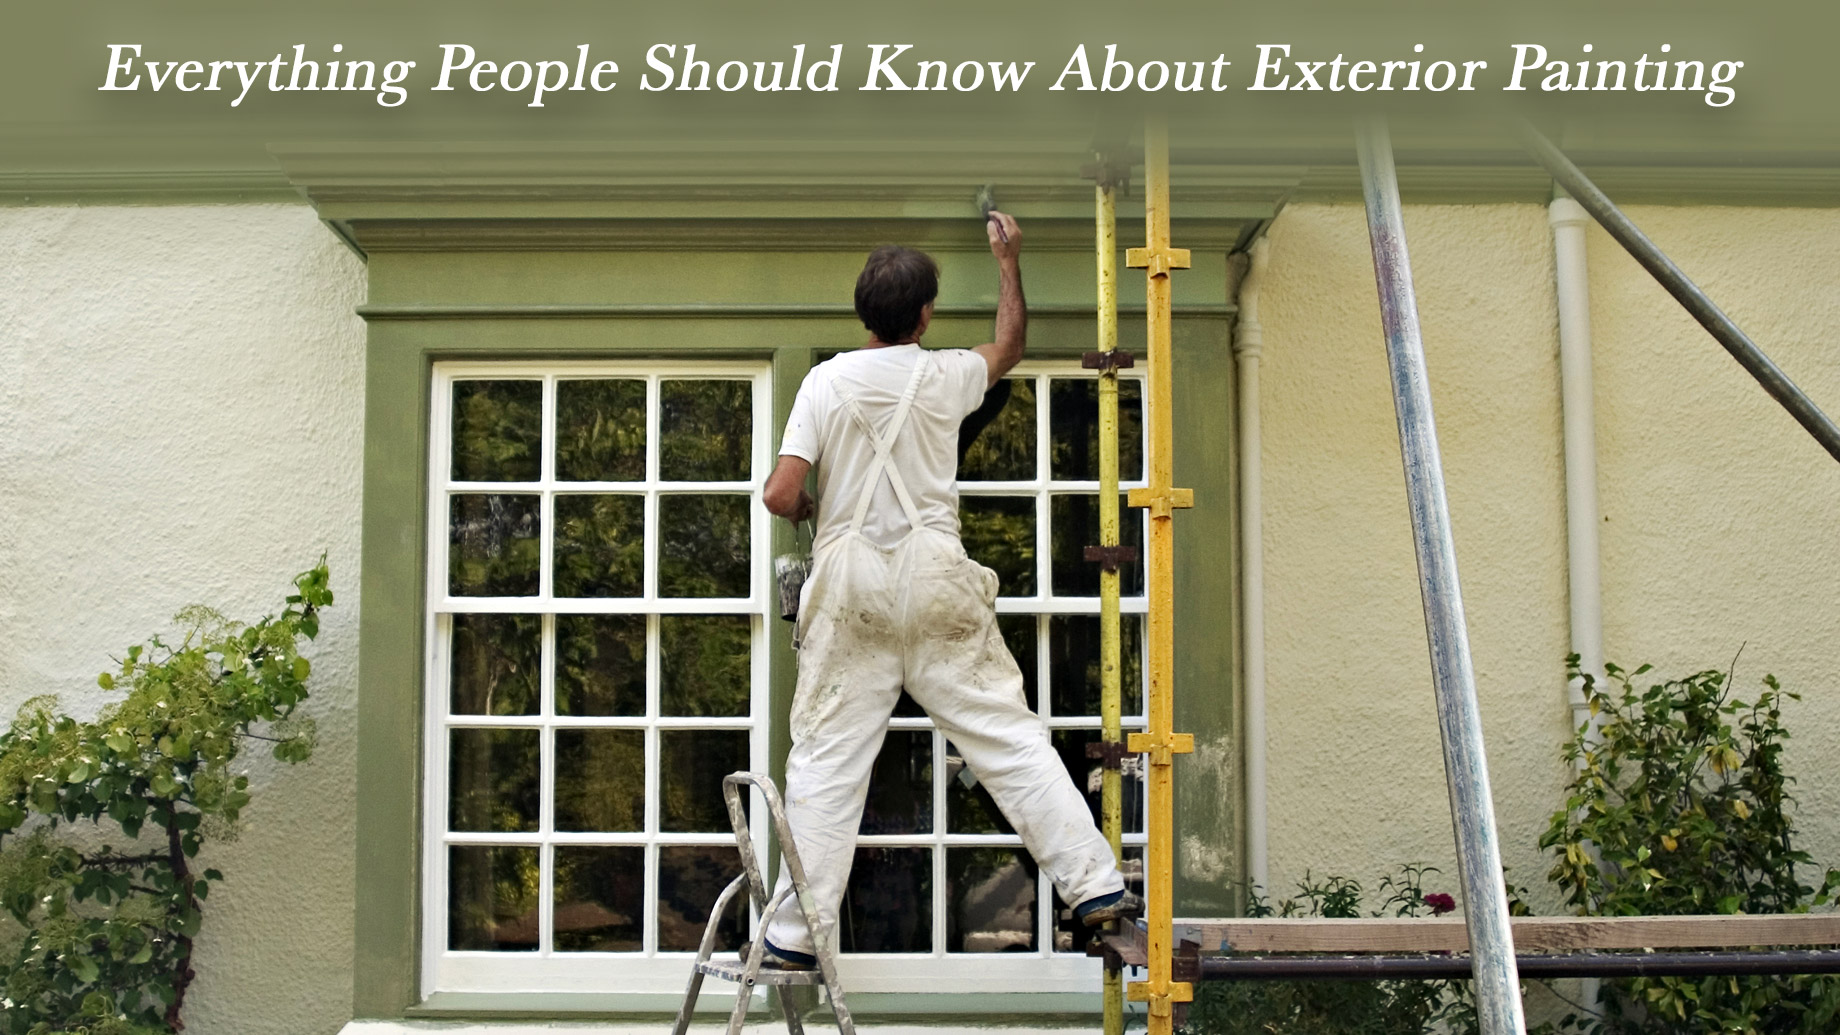 Everything People Should Know About Exterior Painting